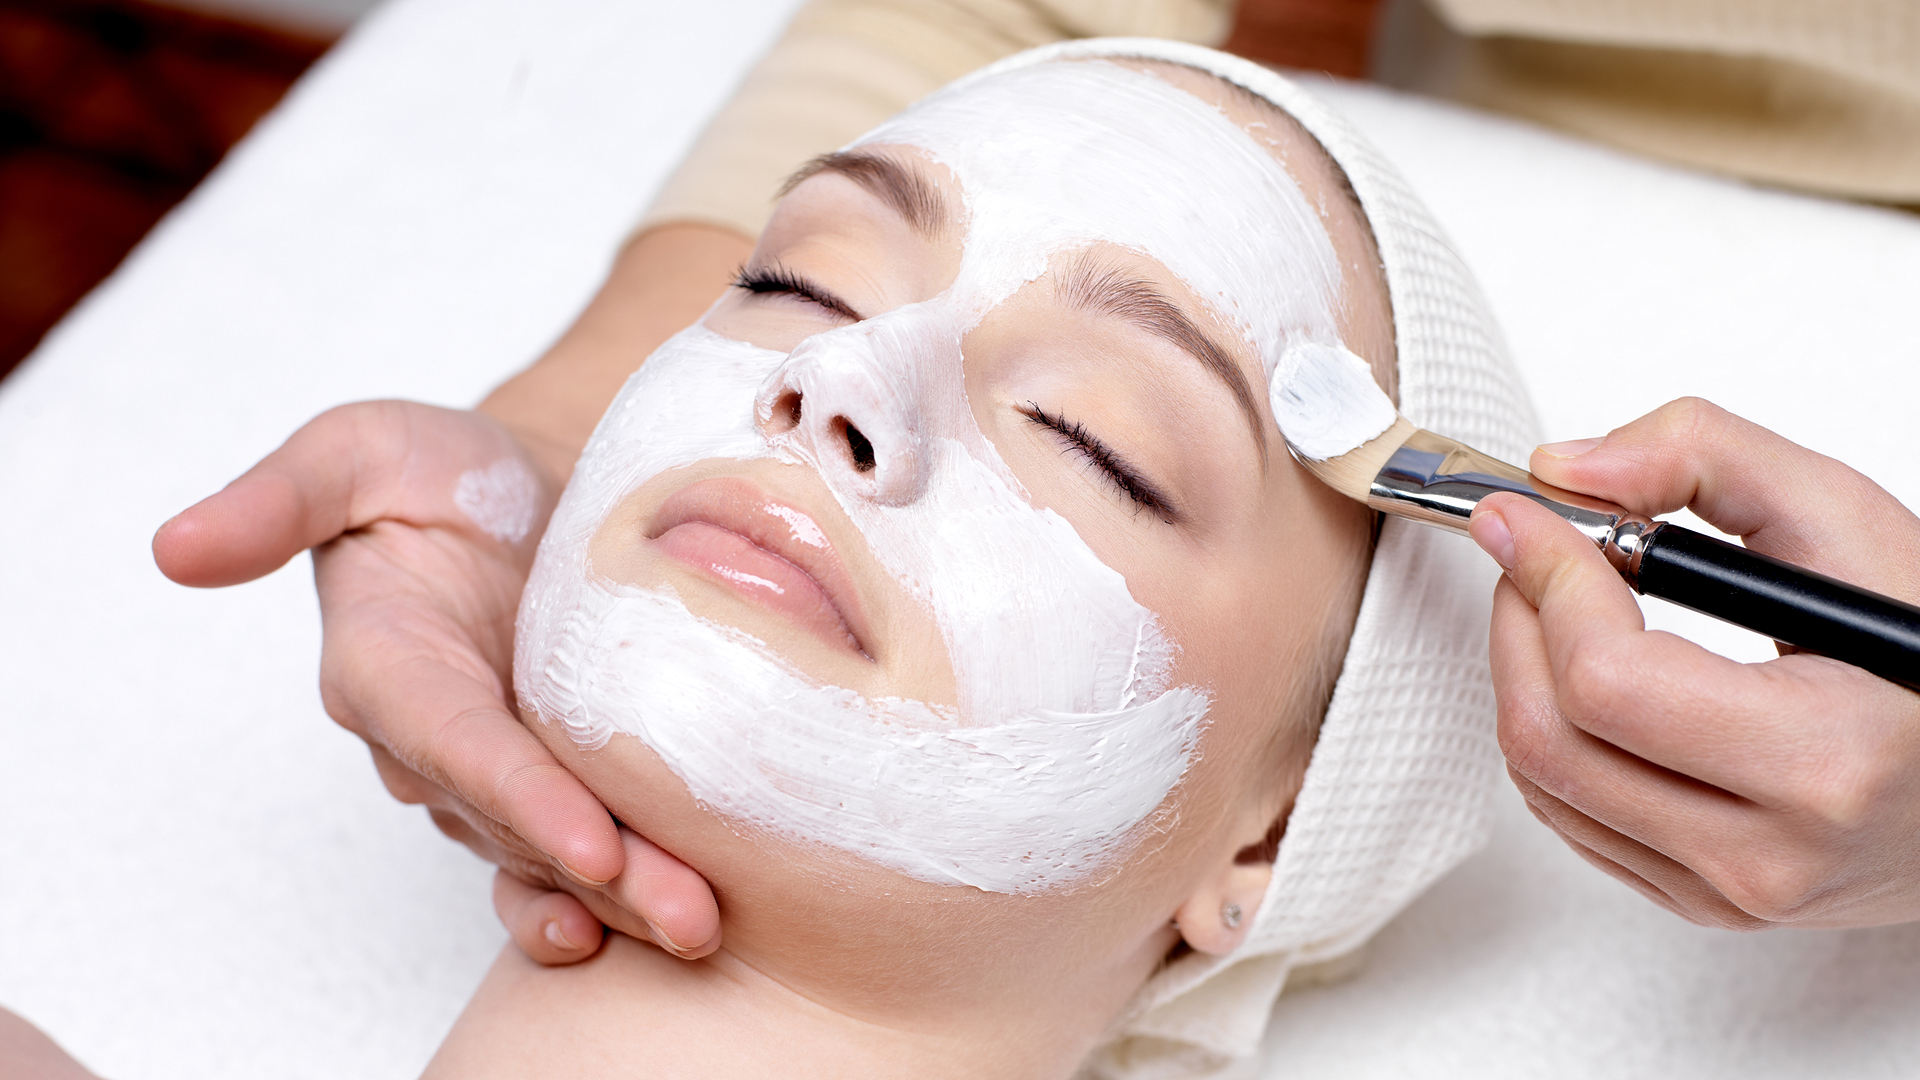 Discussion on this topic: How to Take Care of Your Skin, how-to-take-care-of-your-skin/